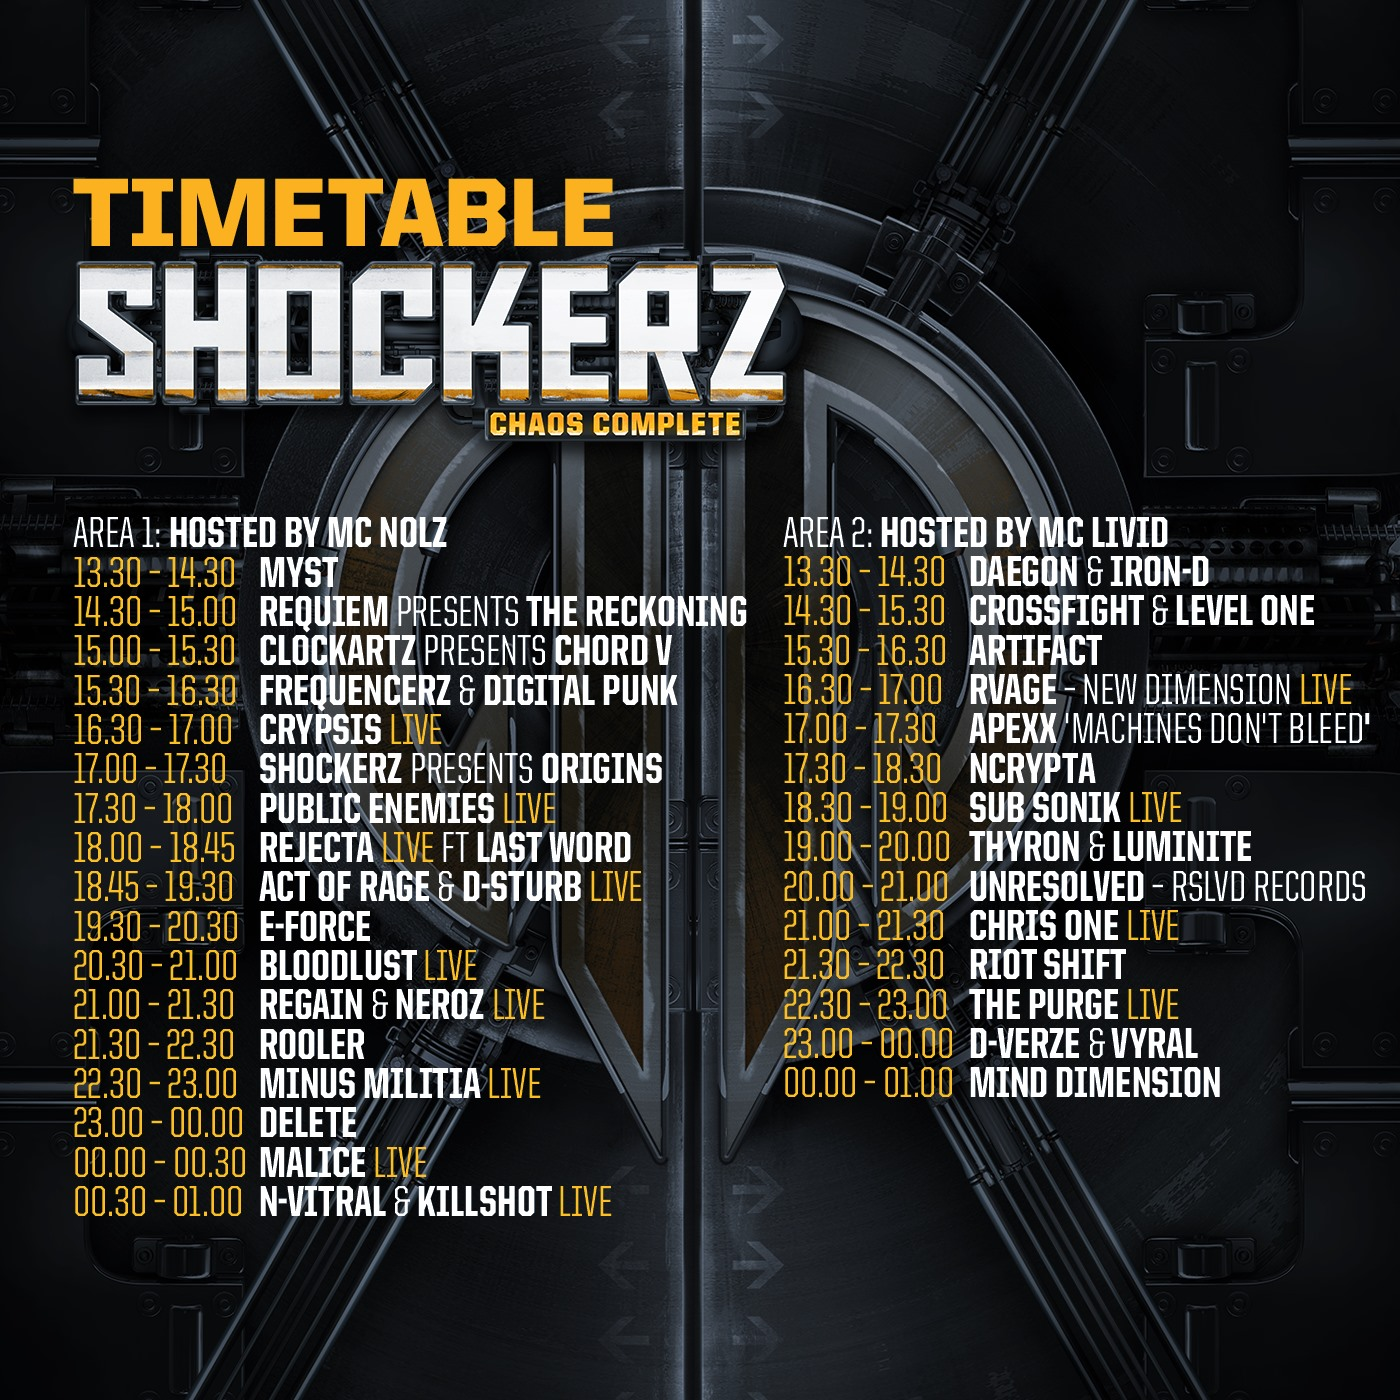 Shockerz 2019